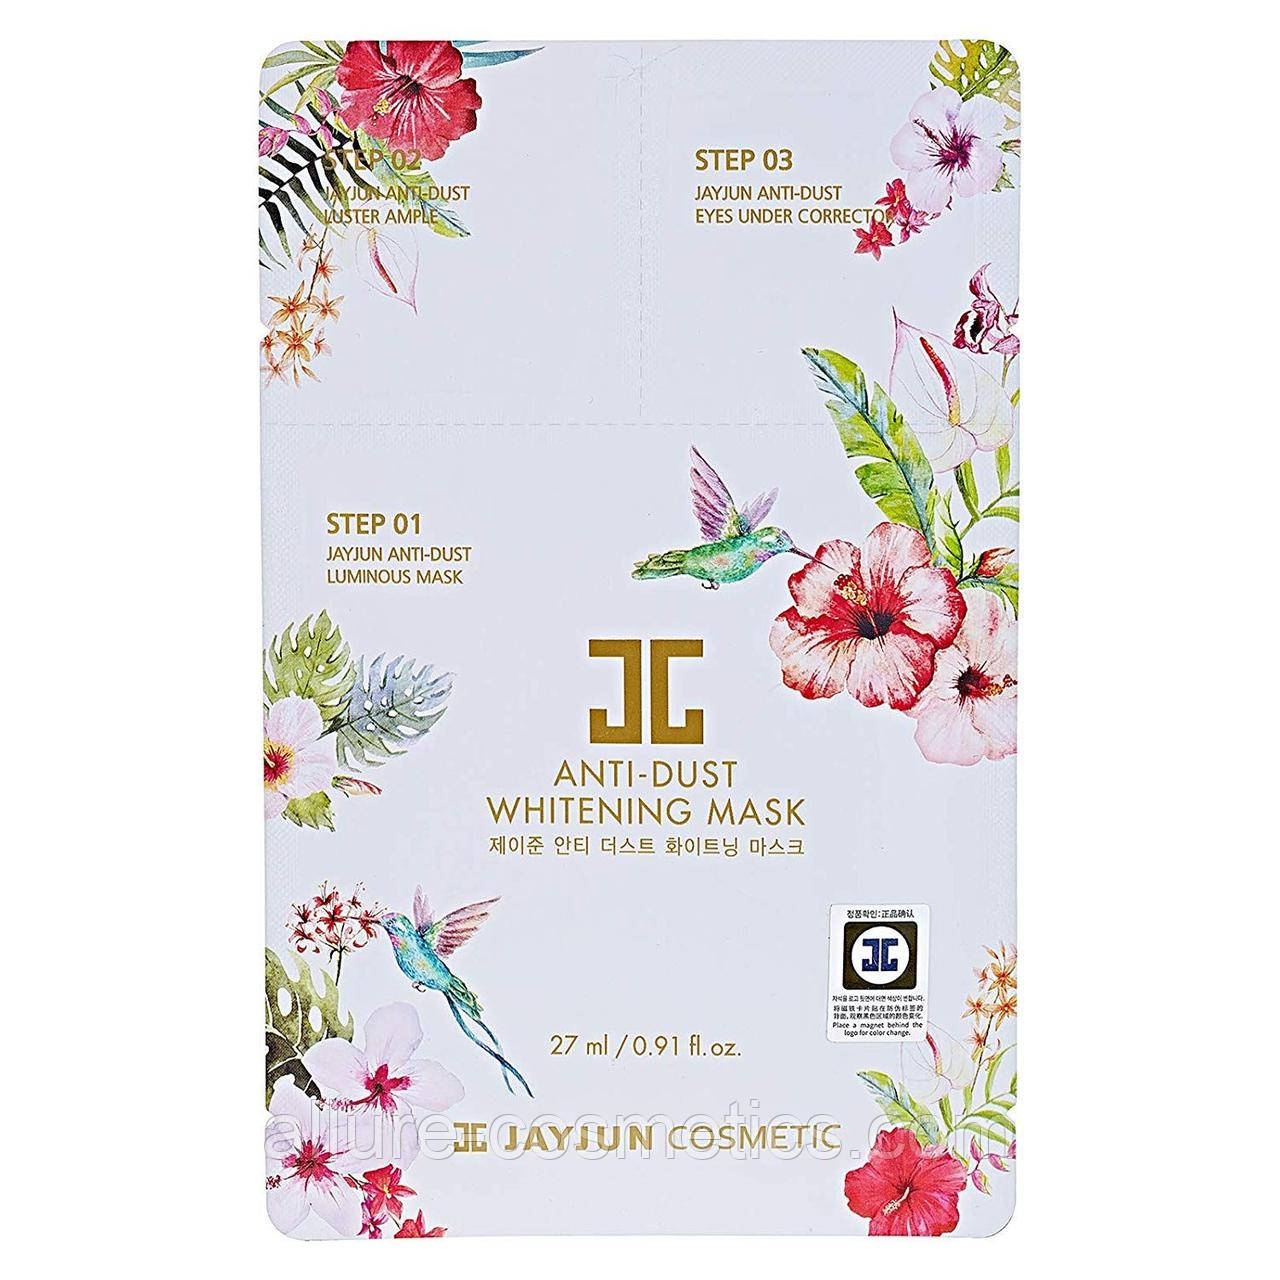 Трёх-шаговая осветляющая маска для лица JAYJUN ANTI-DUST WHITENING MASK